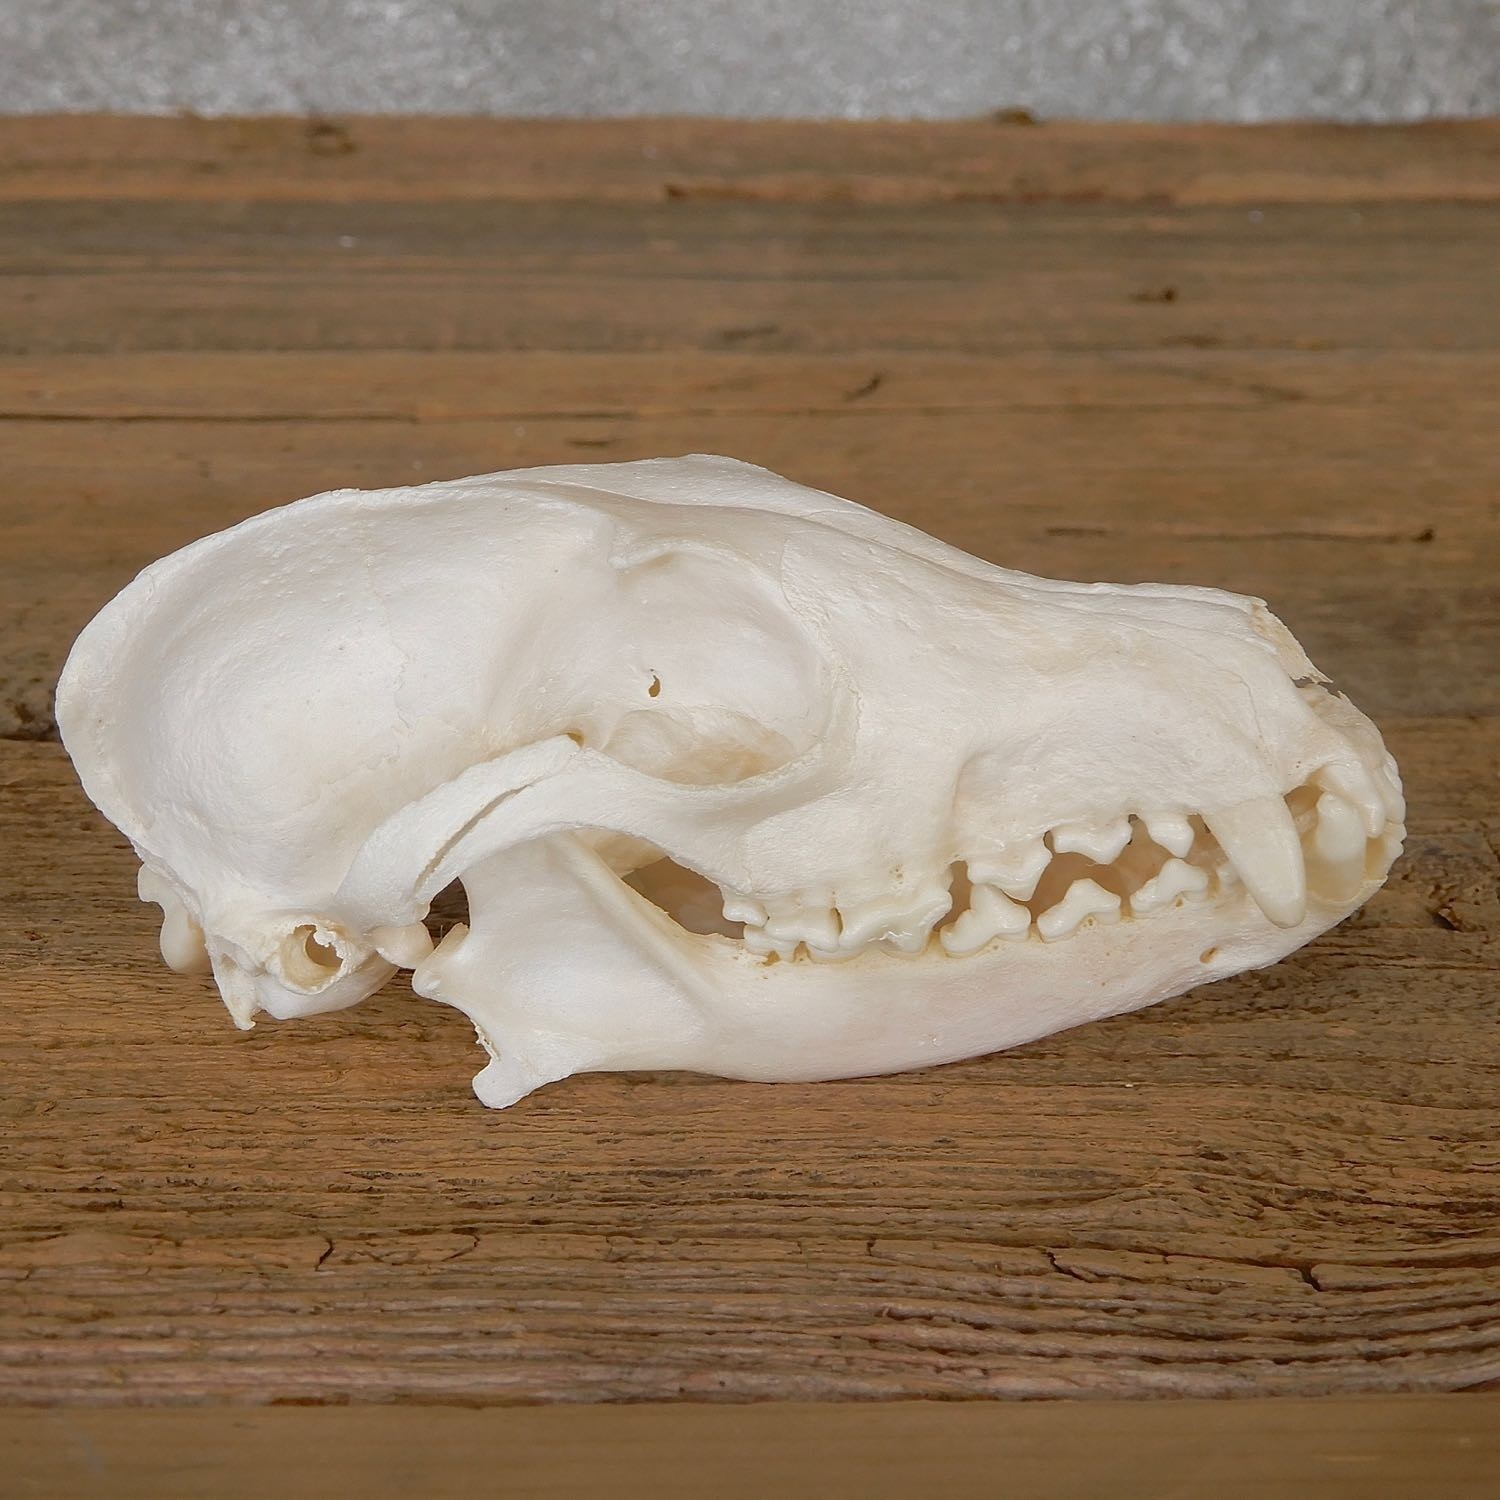 Pathology Arctic Fox Skull For Sale 19273 The Taxidermy Store Buy floral fox skull (with background) art print by actiasartistry. pathology arctic fox skull taxidermy for sale